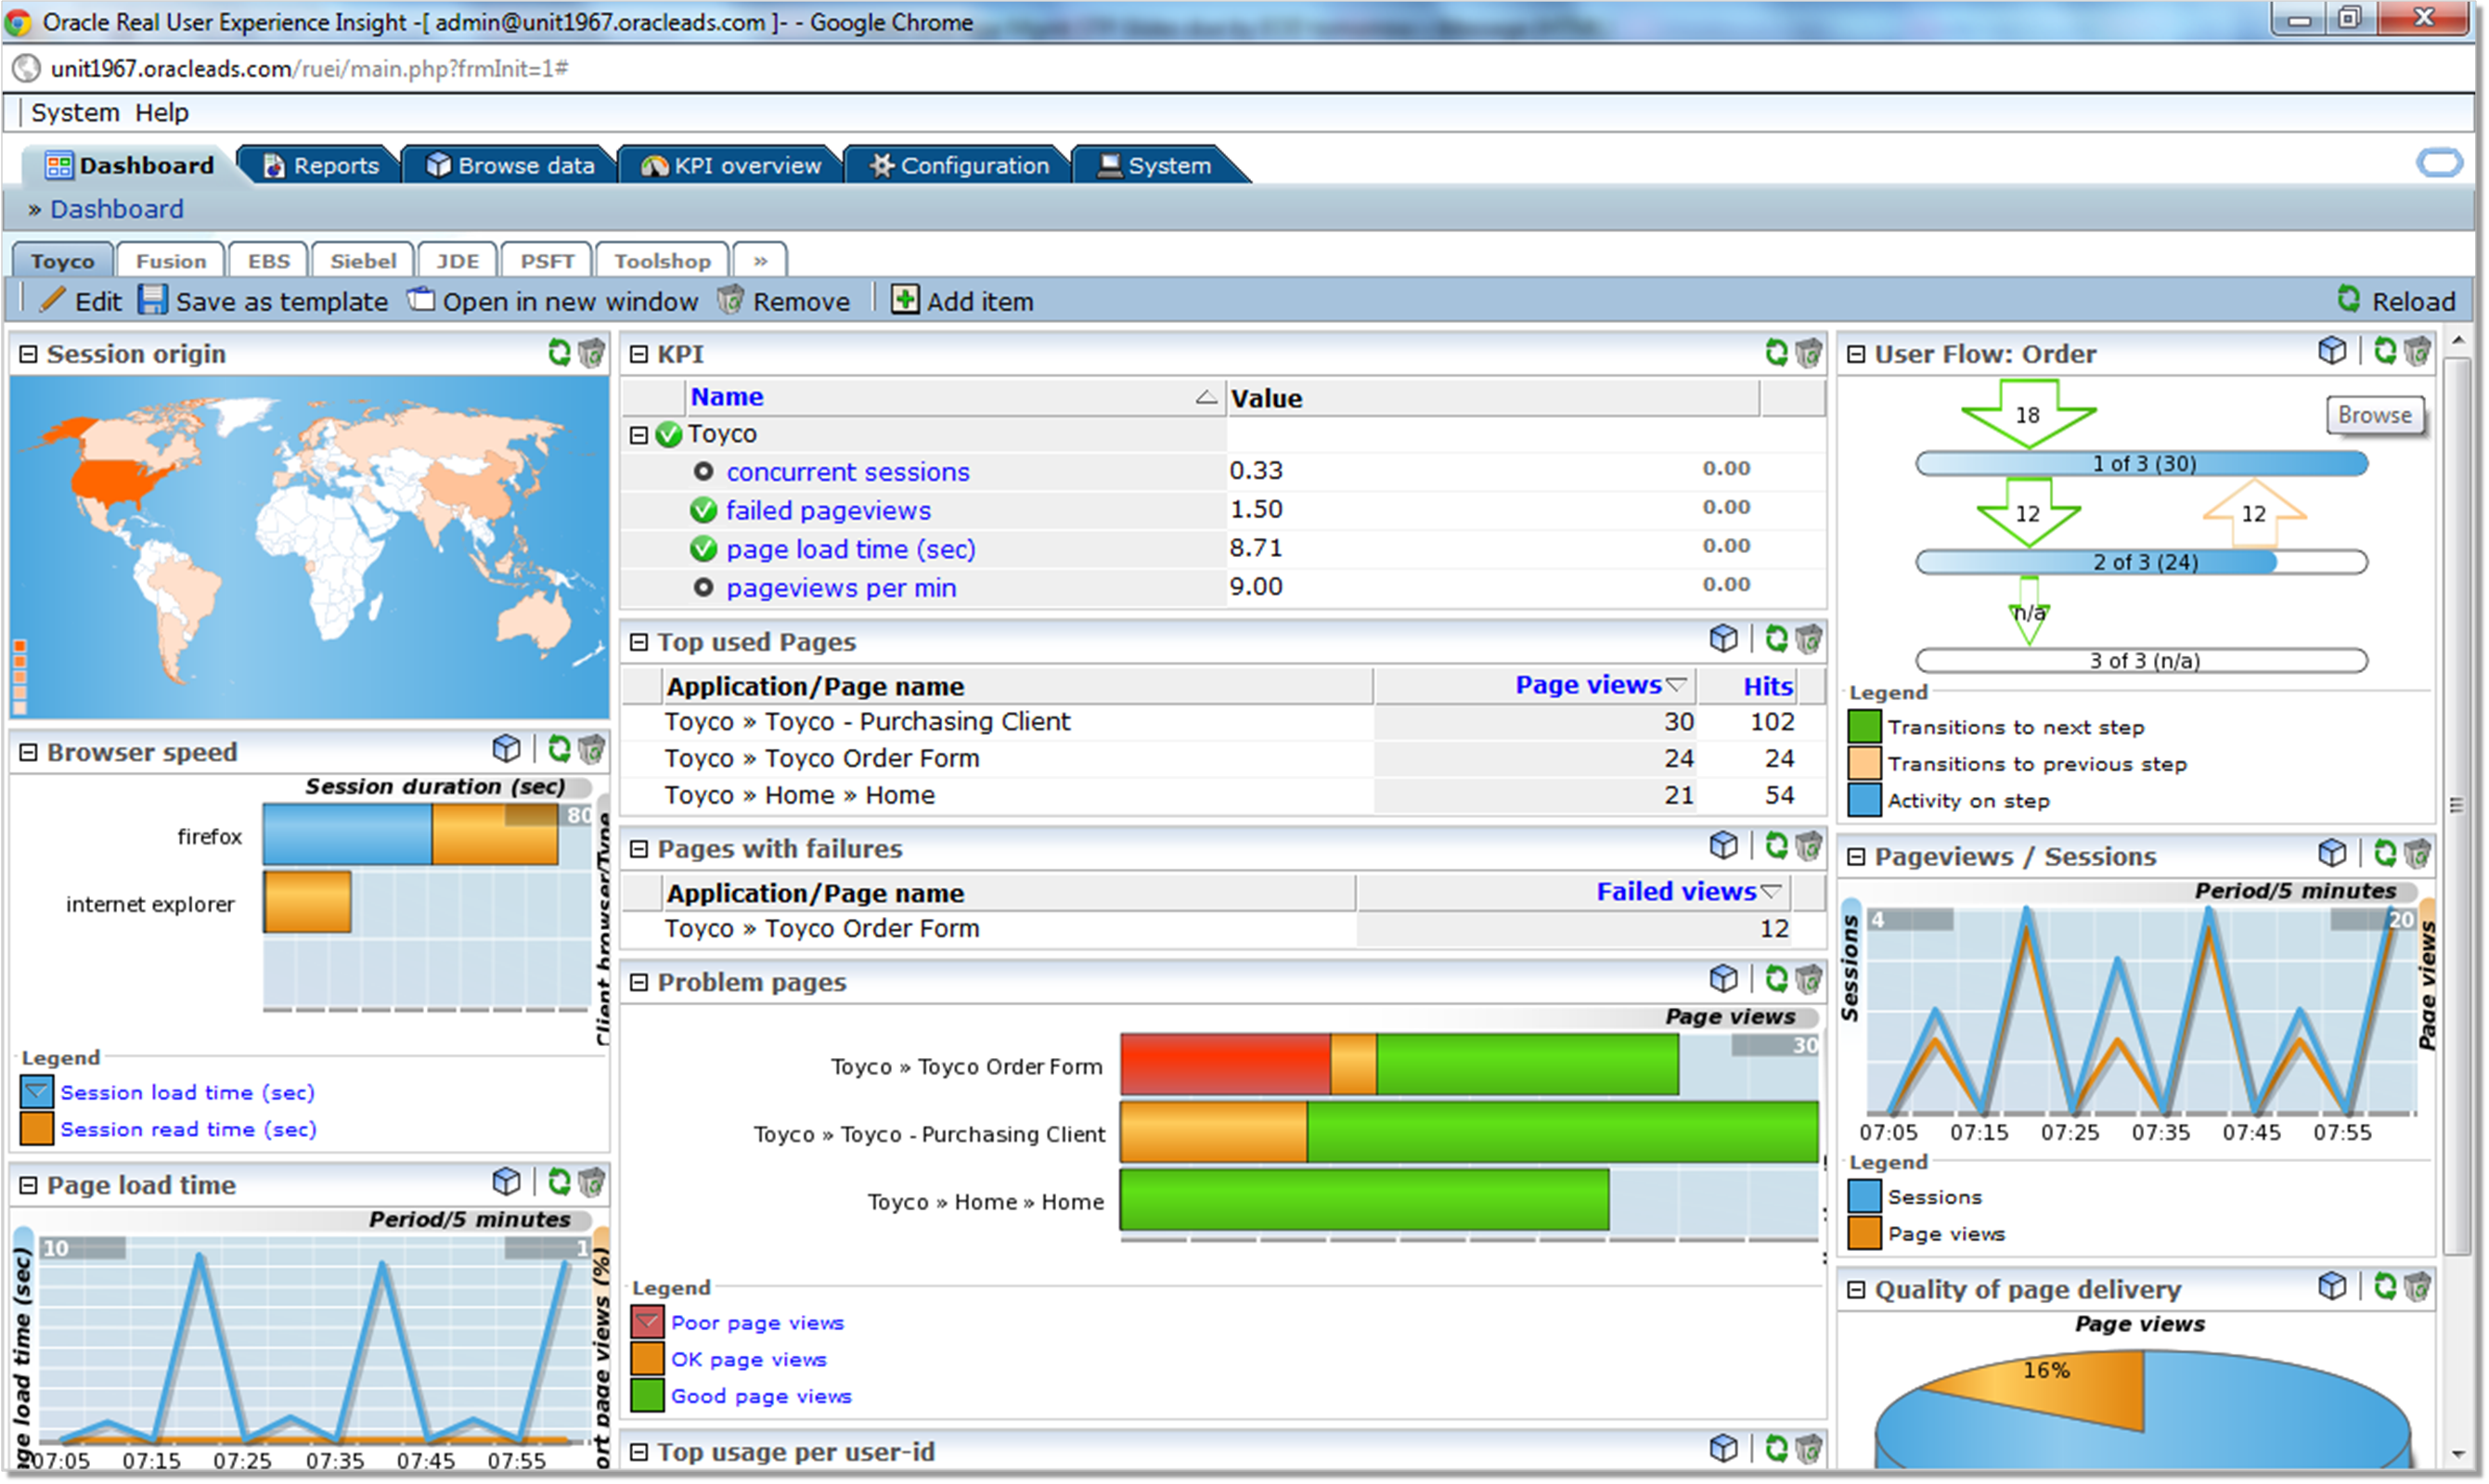 EnterpriseManager12cCloudControl ApplicationPerformanceManagement Figure2.